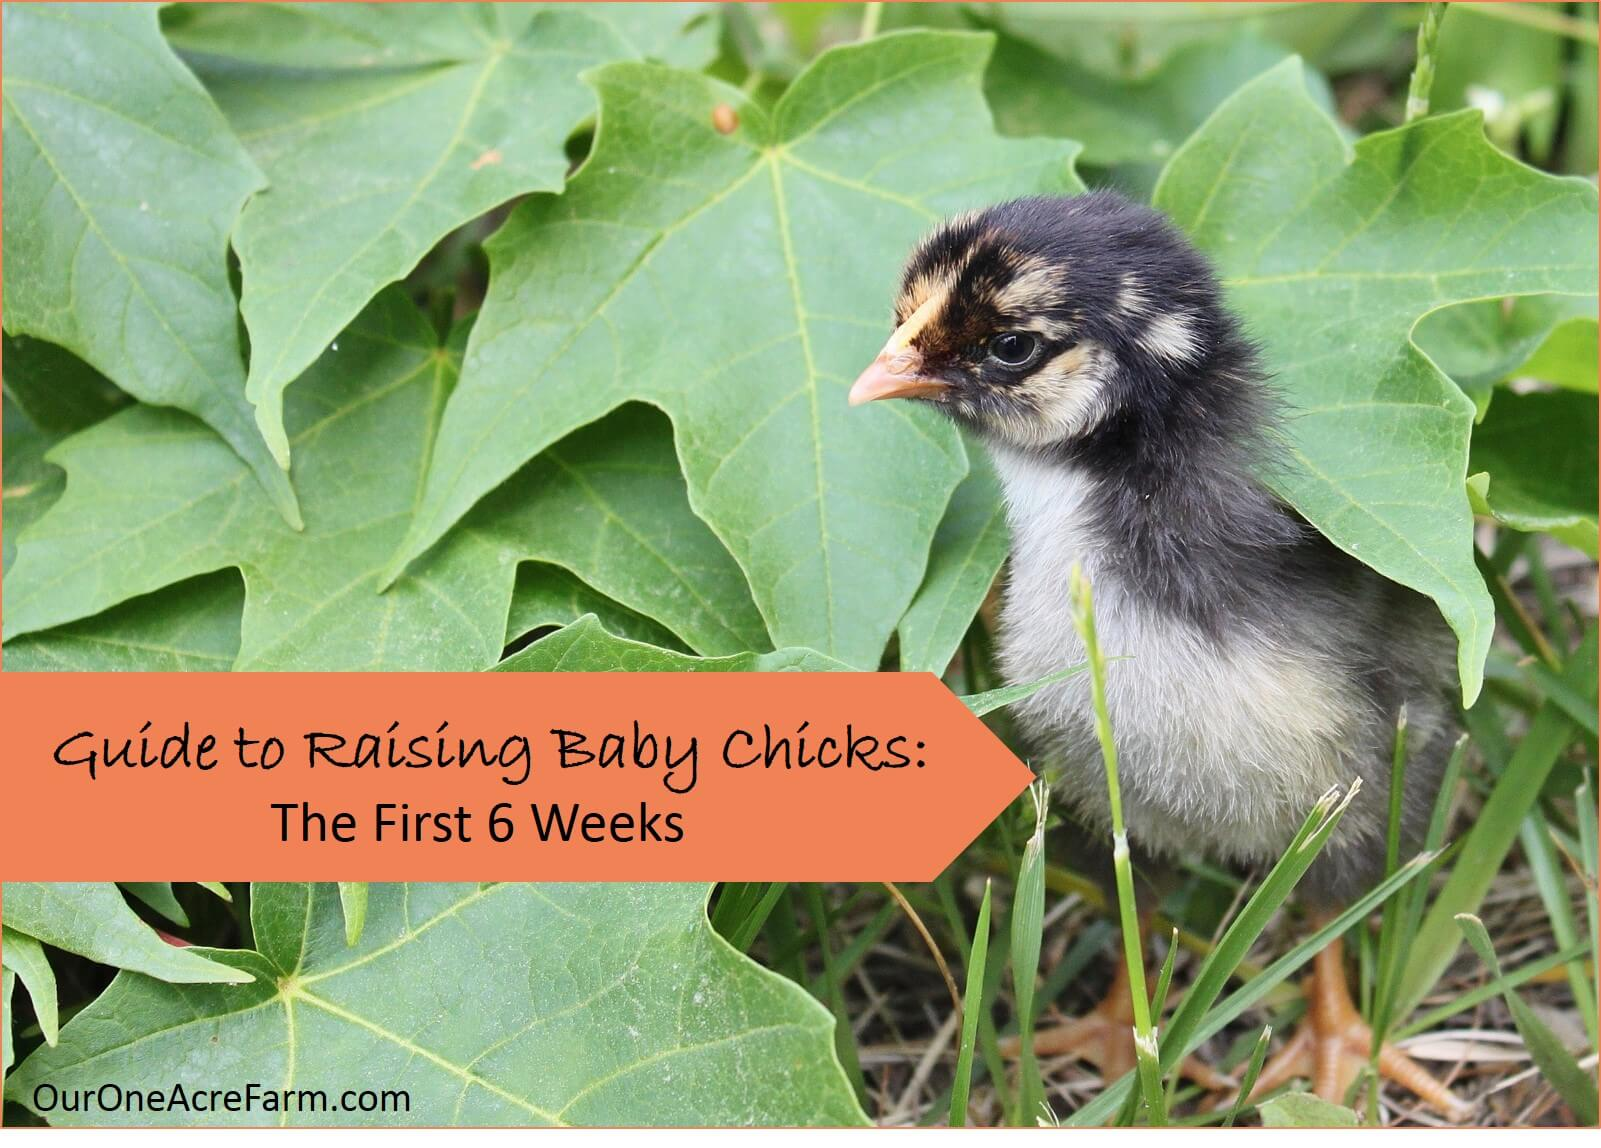 A thorough guide to raising baby chicks without a hen. Where to buy chicks, setting up a brooder box, feeding, watering, spatial needs, stimulation, and problems to look out for. Everything you need to know for the first 6 weeks.